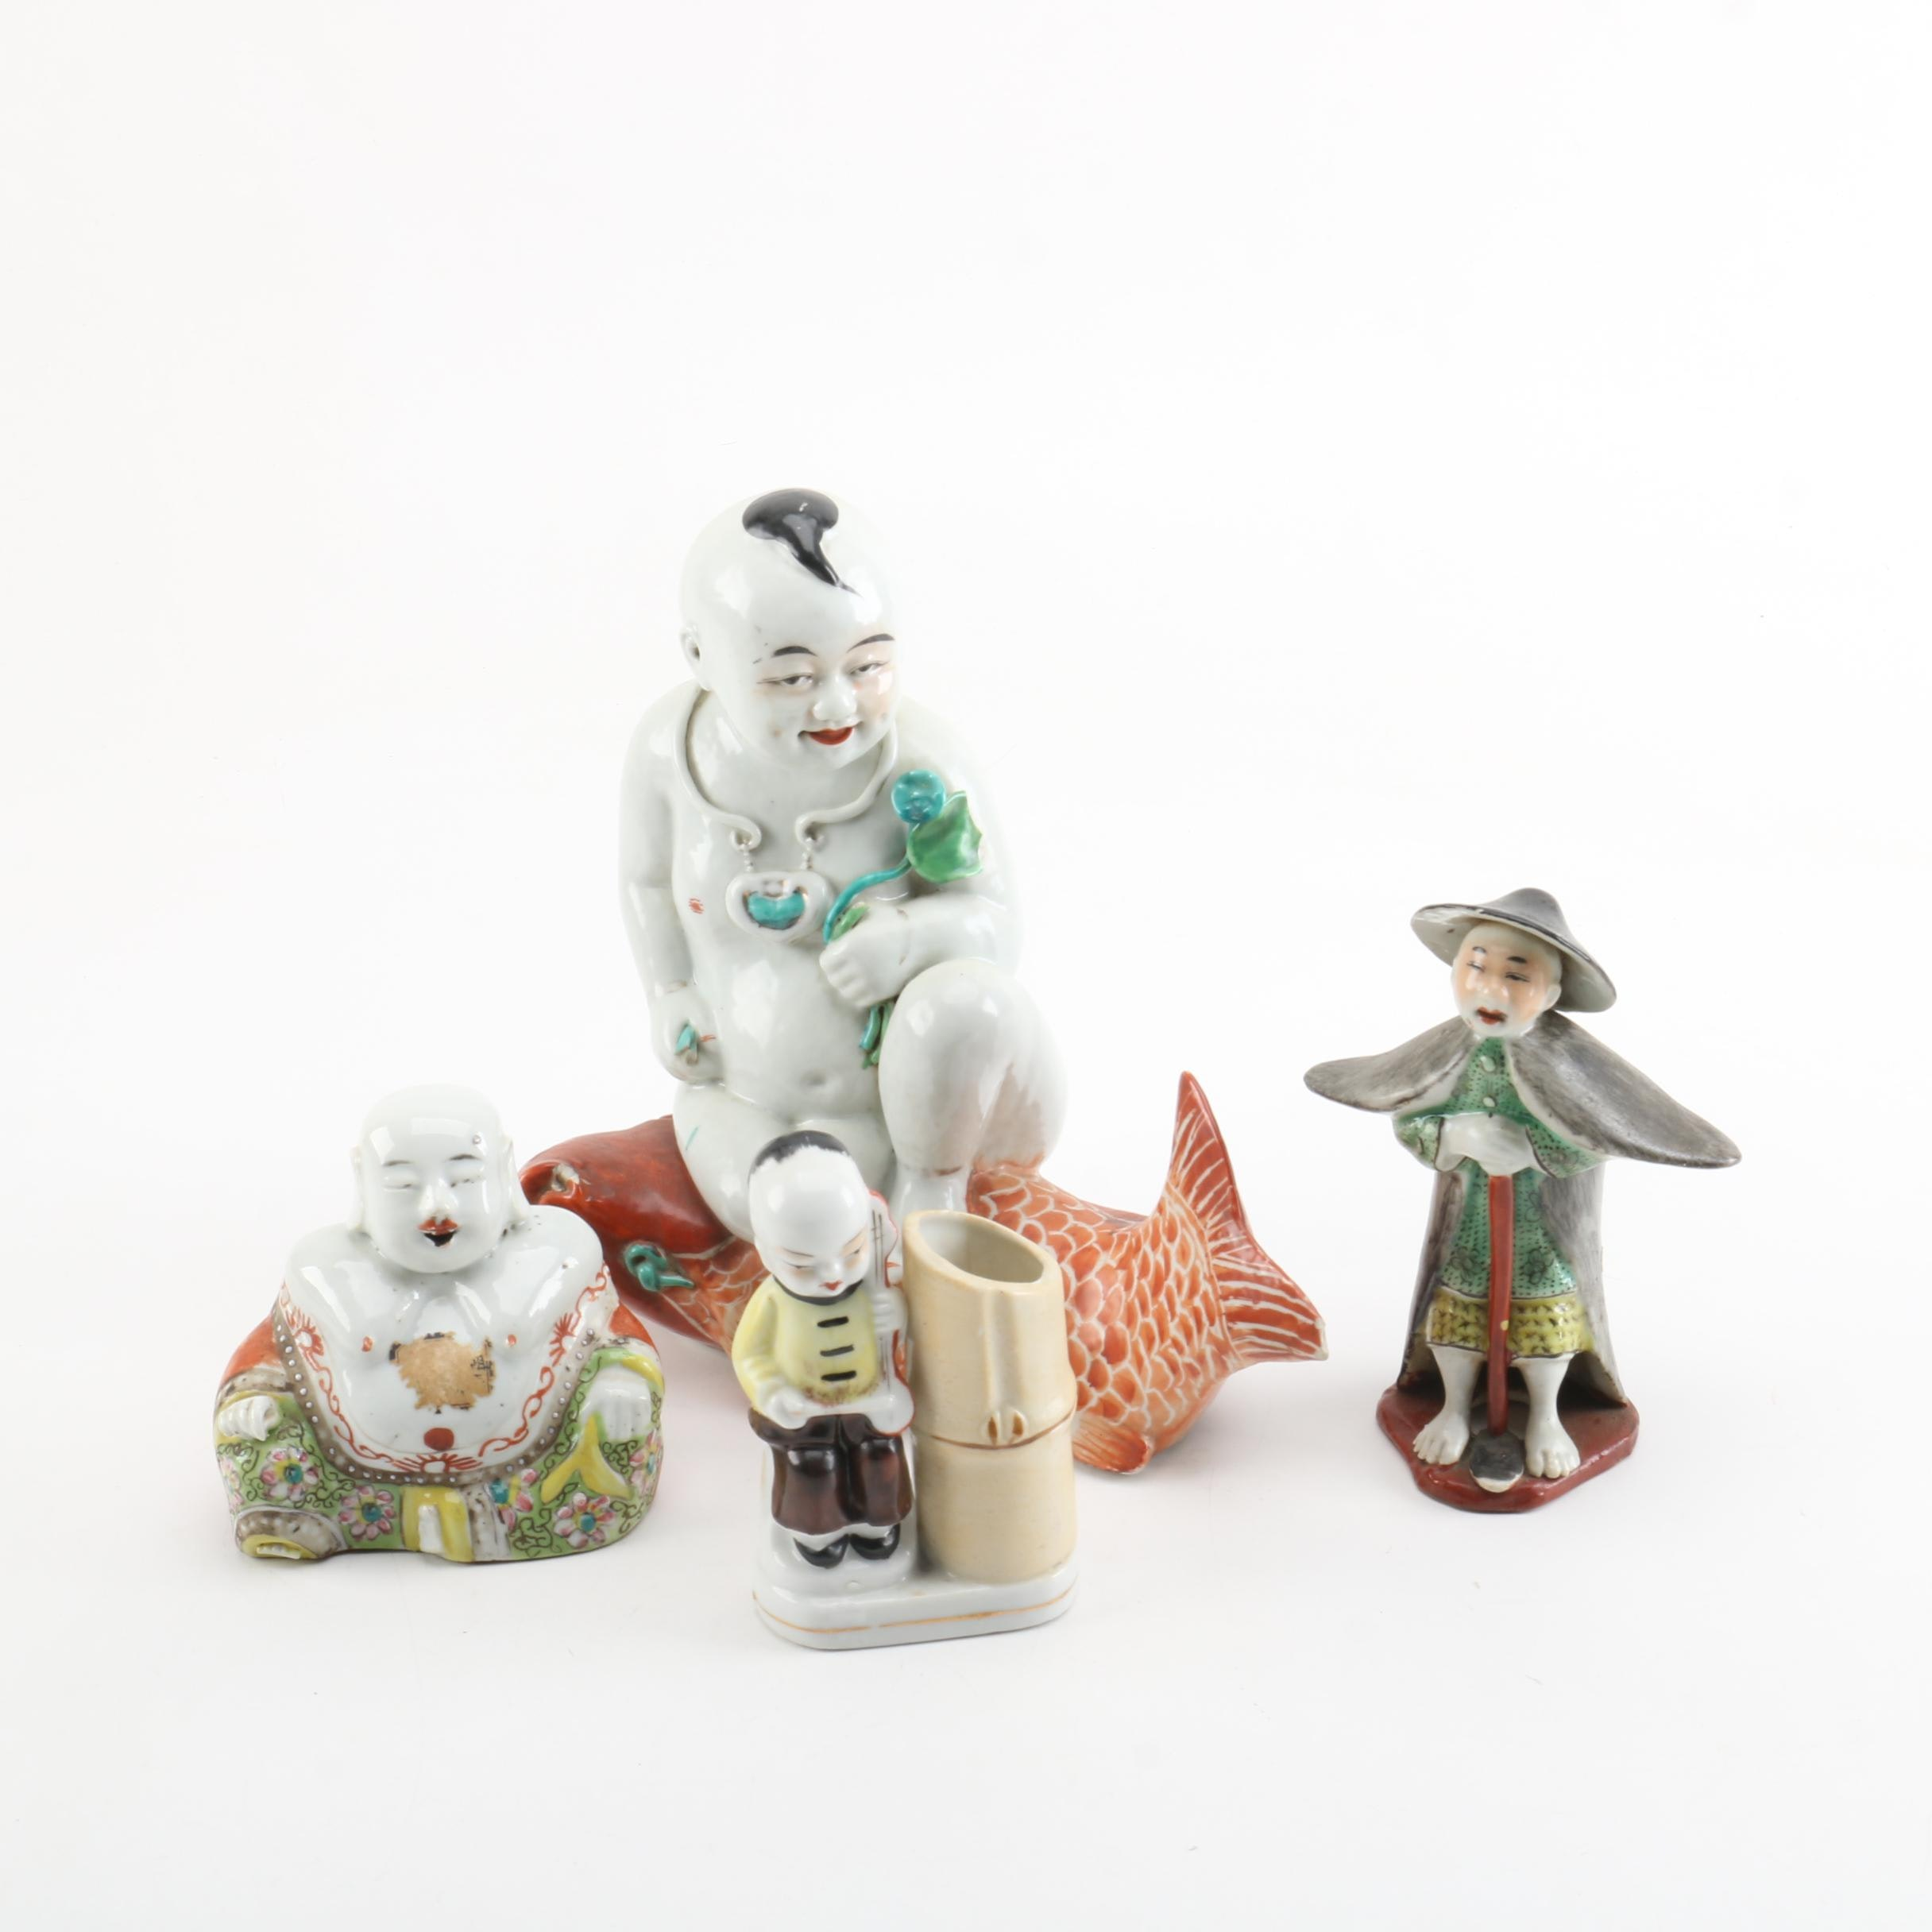 Ceramic Southeast Asian Inspired Figurines